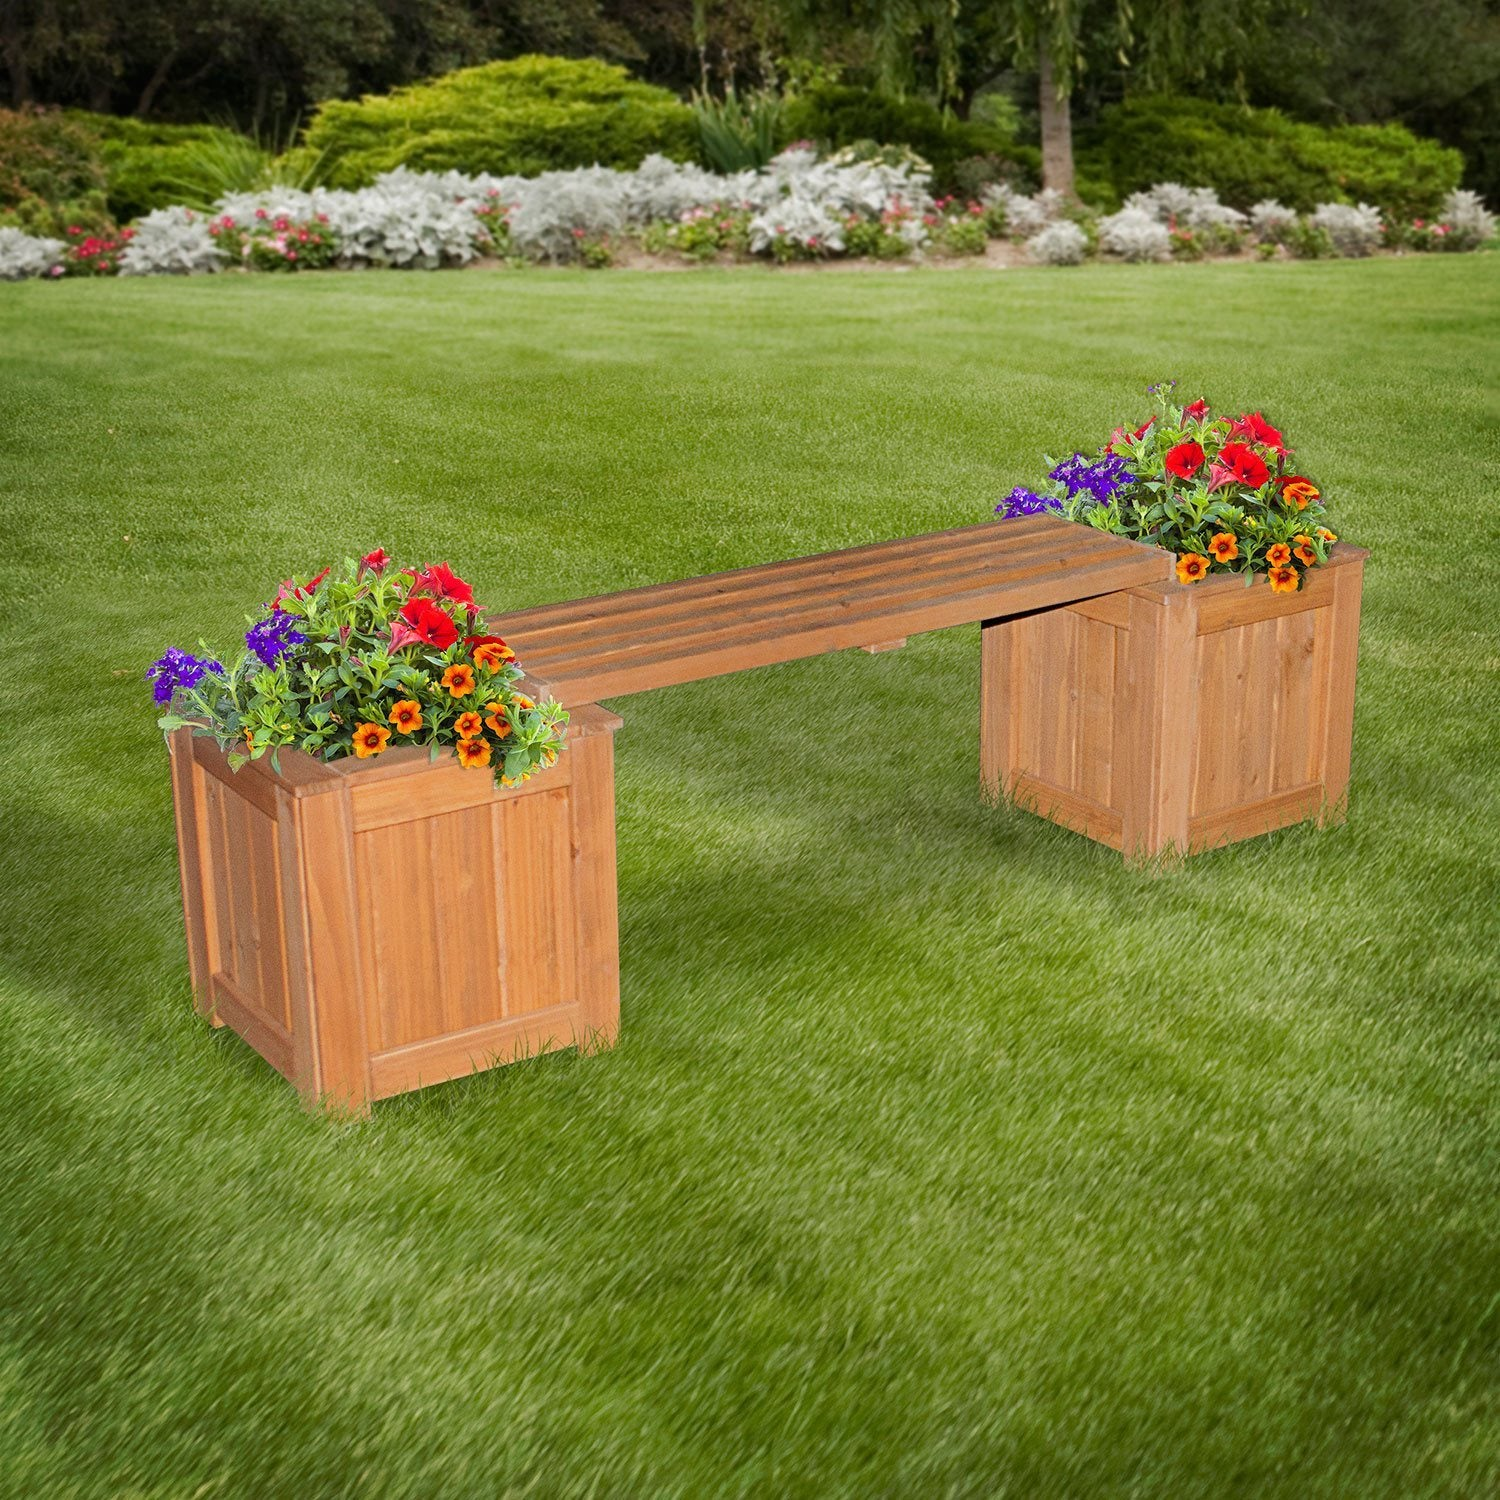 Patio Bench With Planters Patio Backyard Discovery